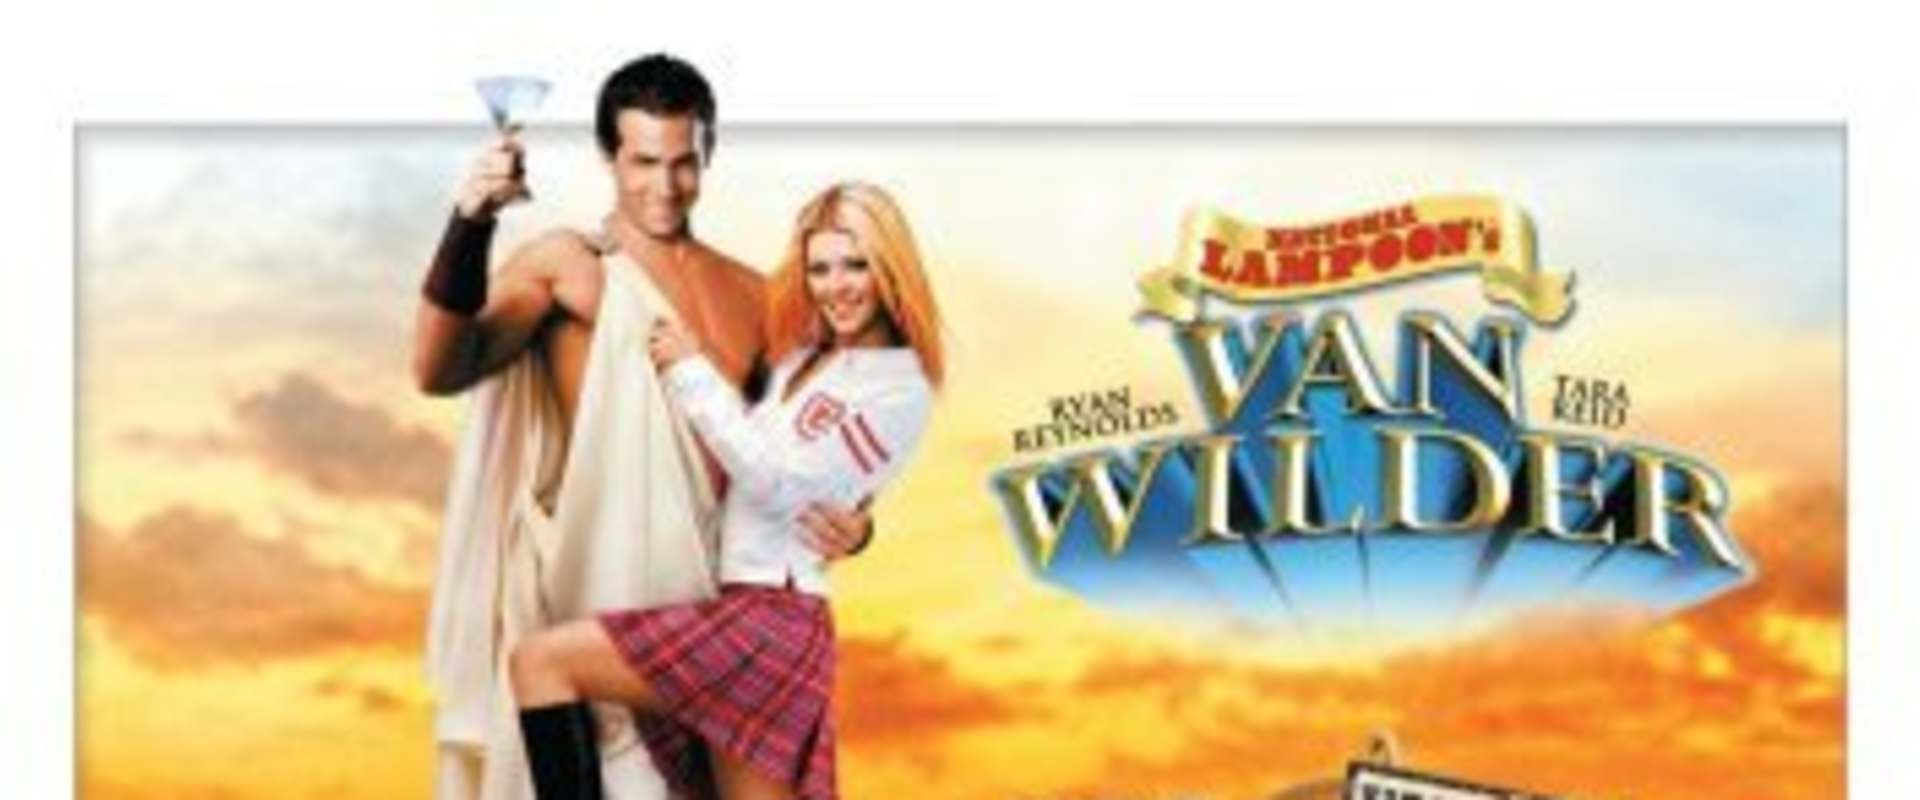 Van Wilder: Freshman Year background 2